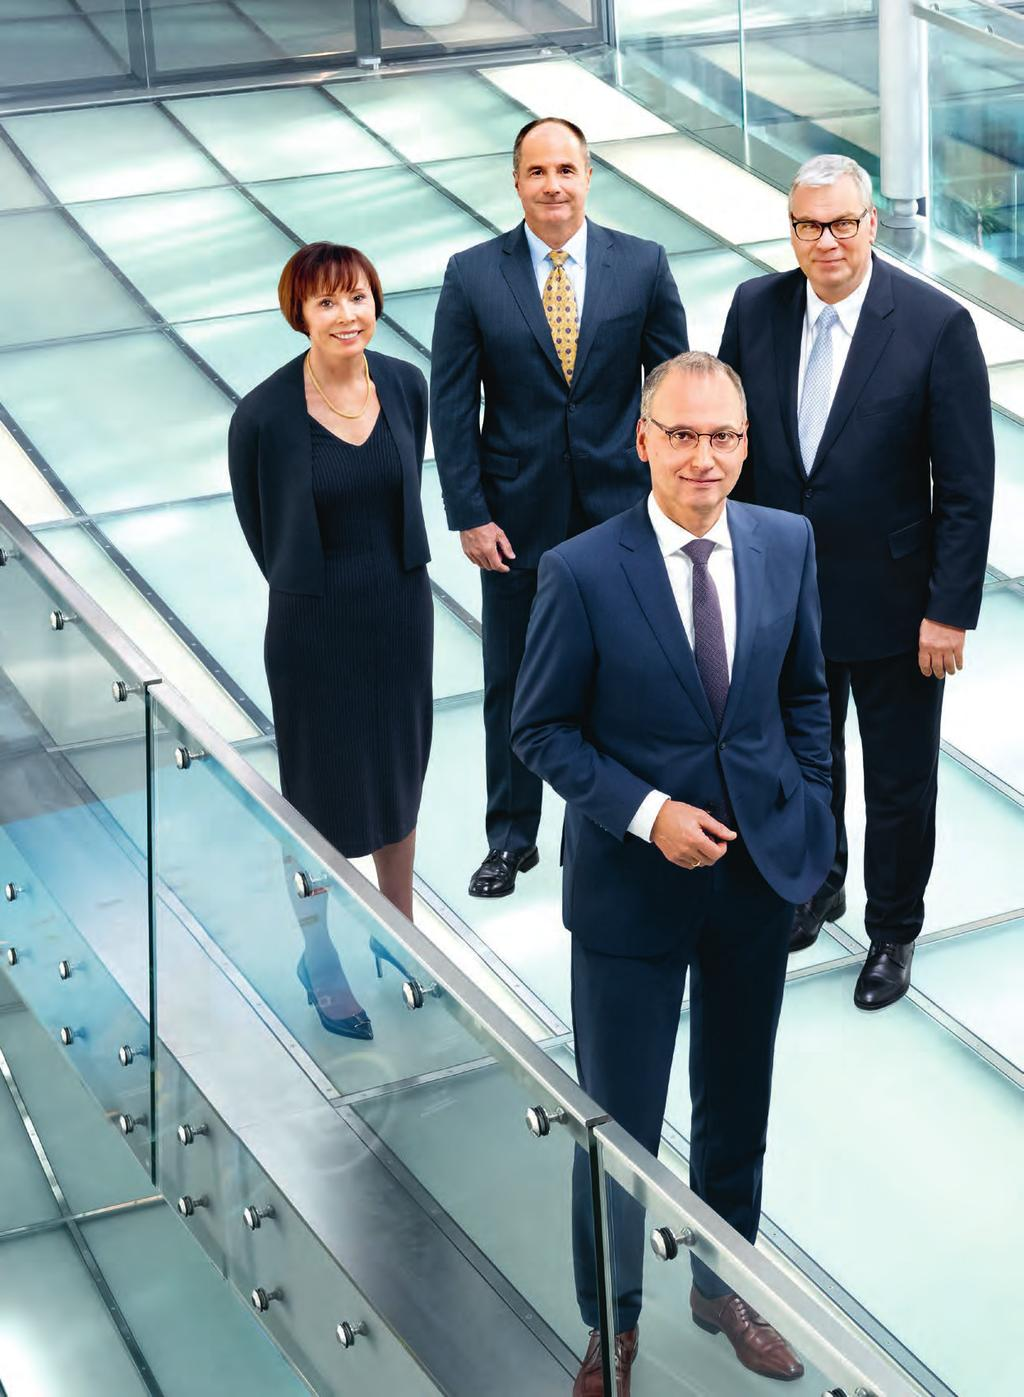 28 To our Stockholders Board of Management Bayer Annual Report 2017 Board of Management Erica Mann ¹ Consumer Health Dieter Weinand Pharmaceuticals Werner Baumann Chairman Johannes Dietsch ² Finance